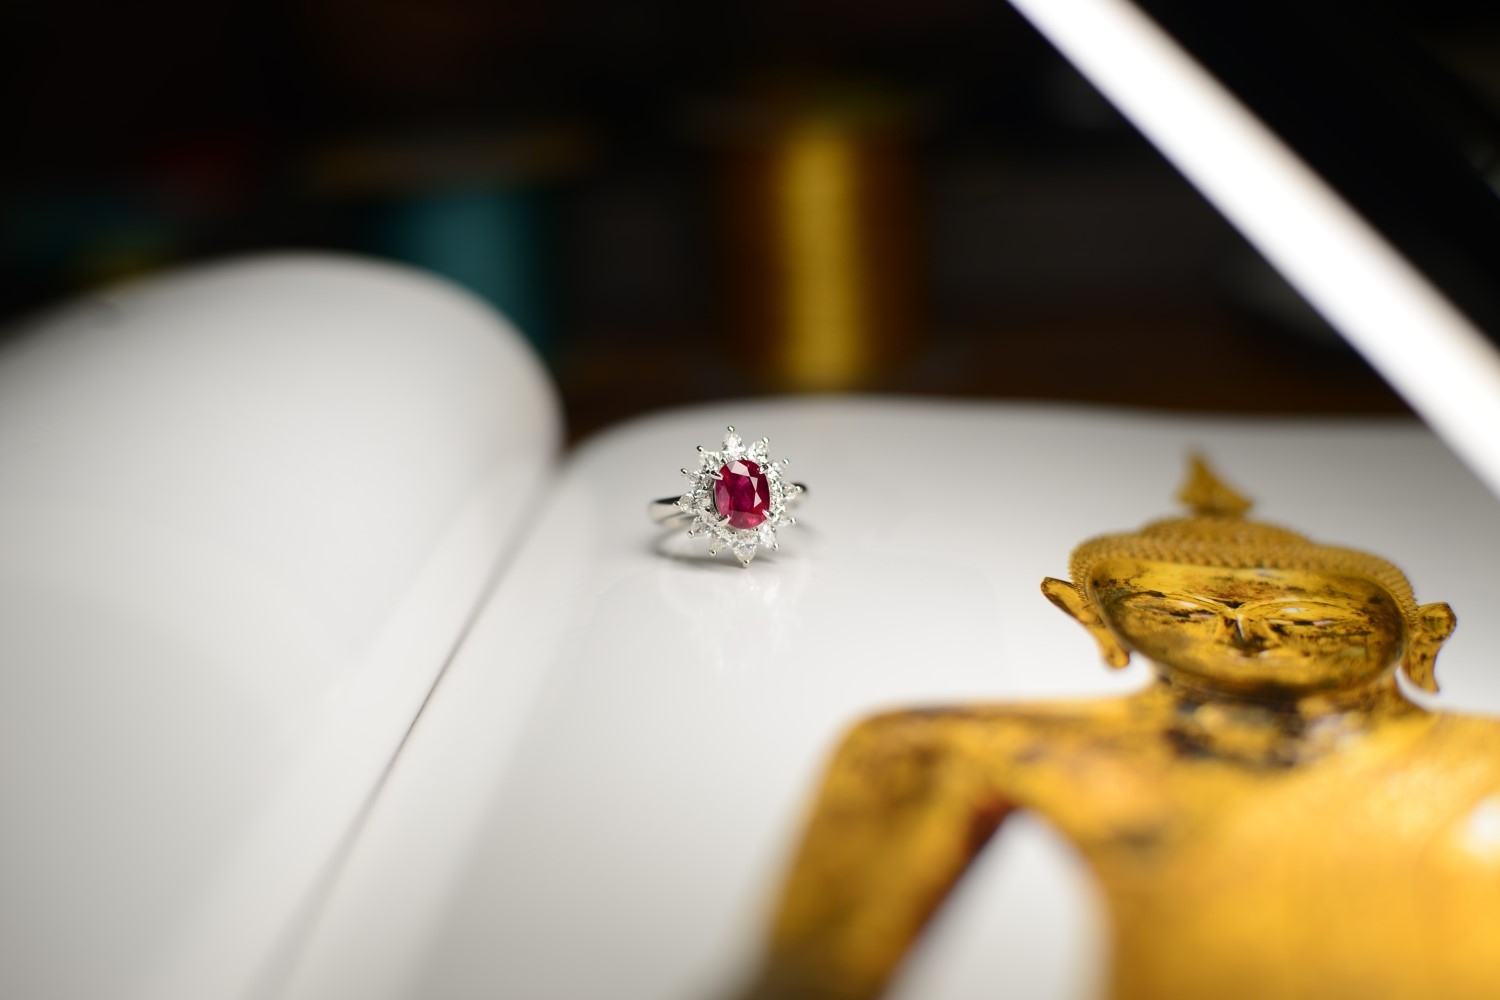 Amber's An Information Center for Diamonds